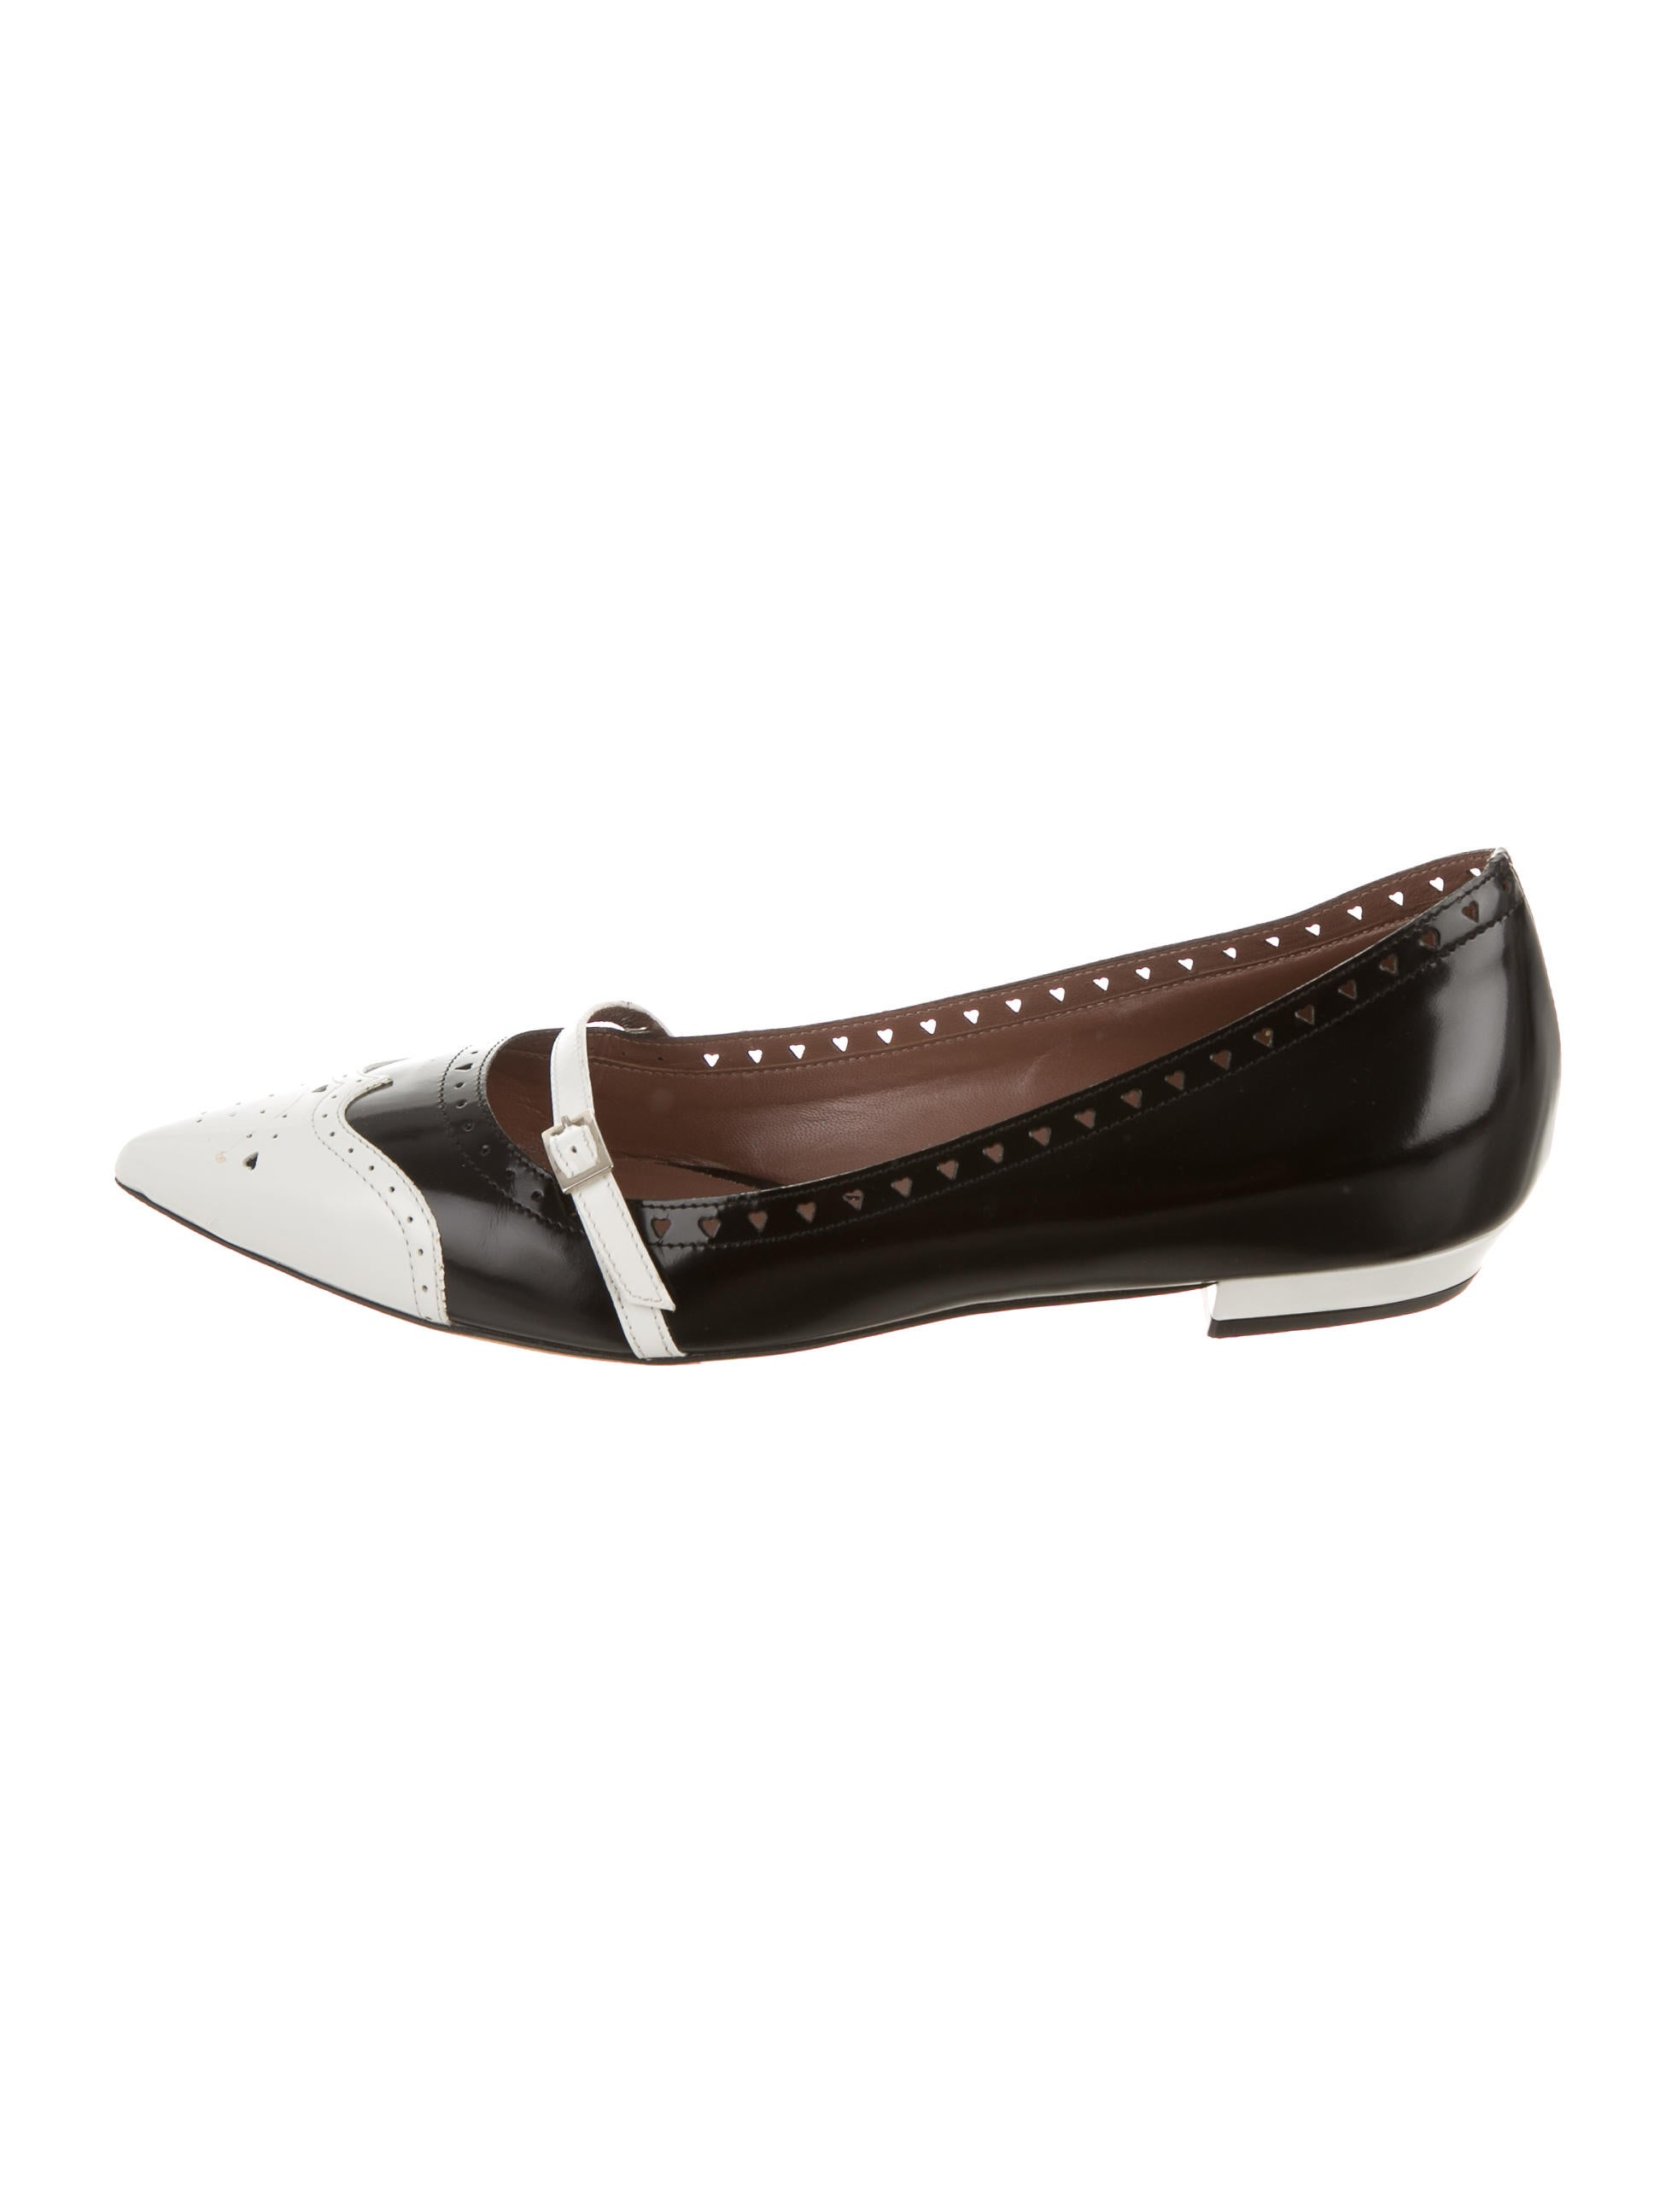 simmons leather pointed toe flats shoes